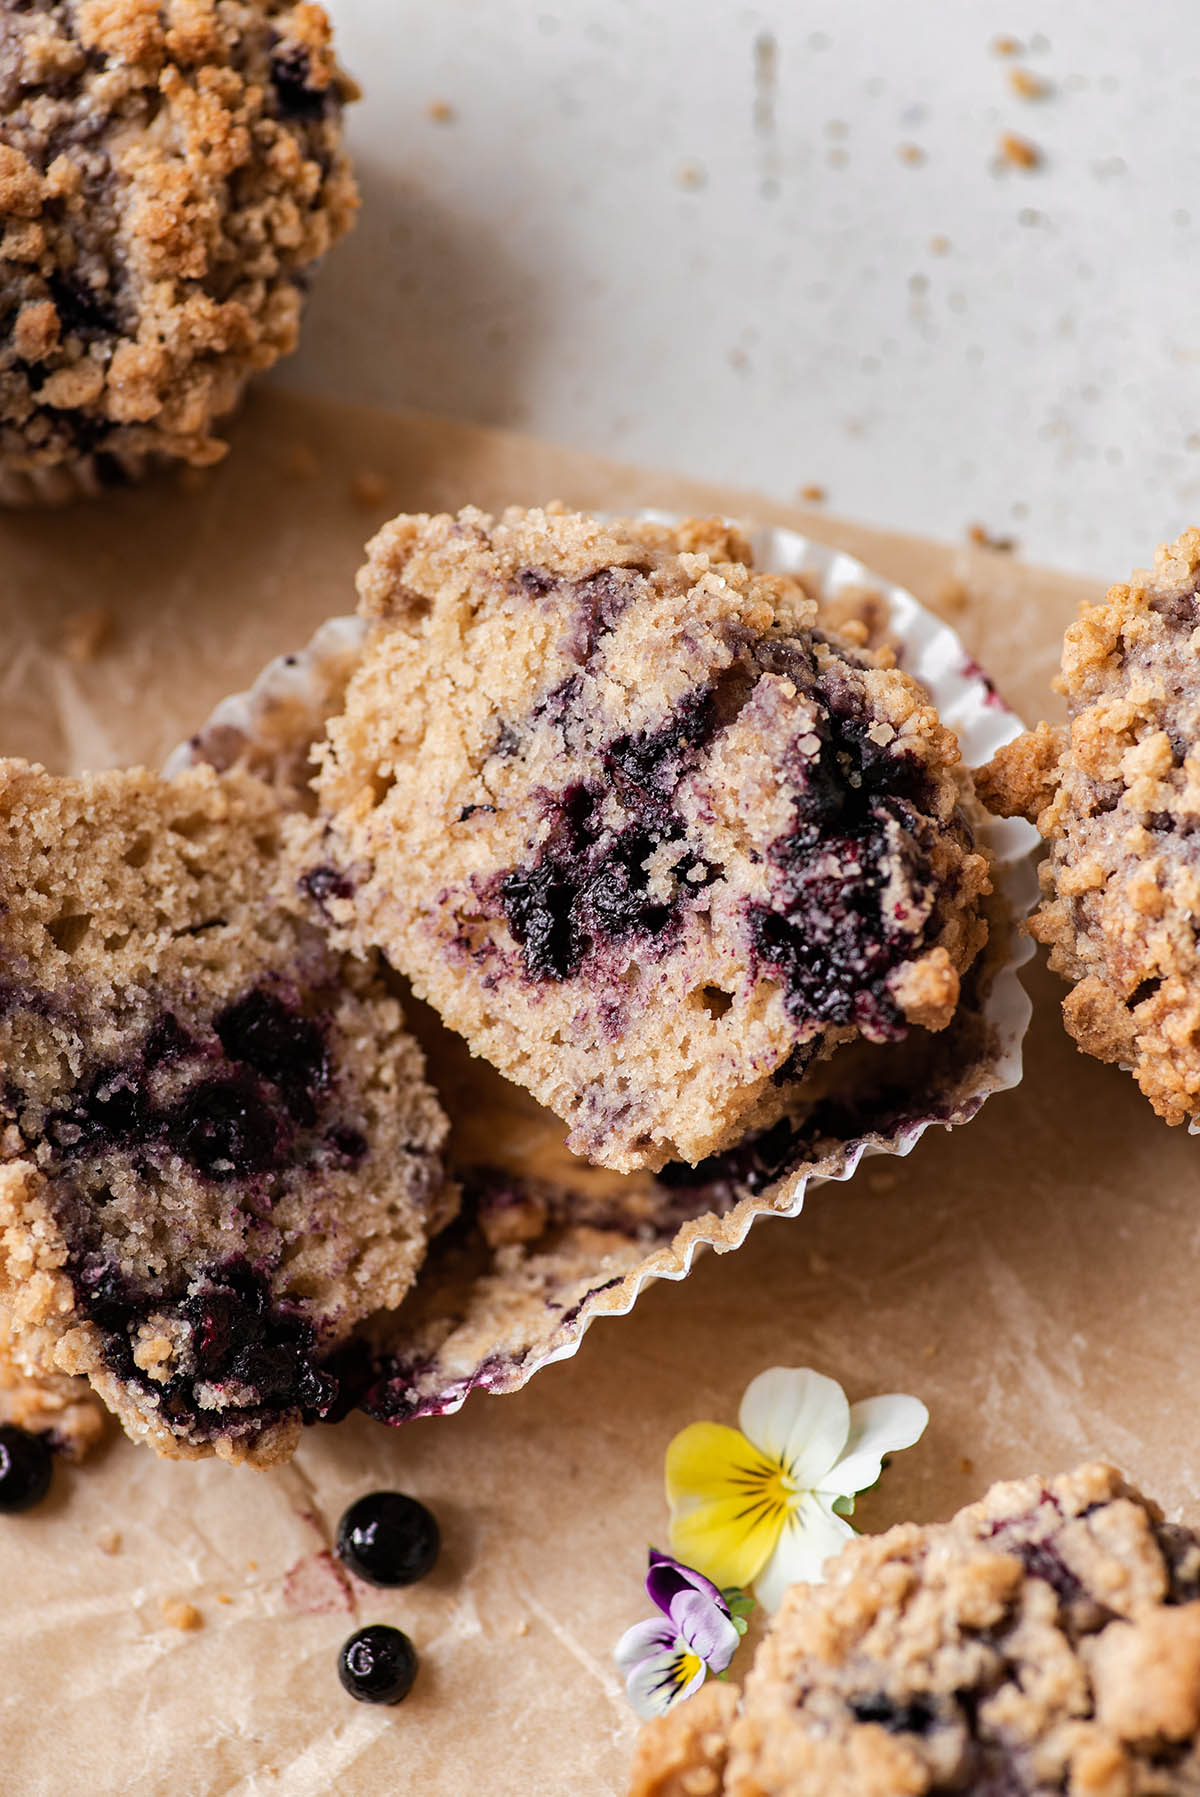 Blueberry streusel muffin cut in half to show interior texture.